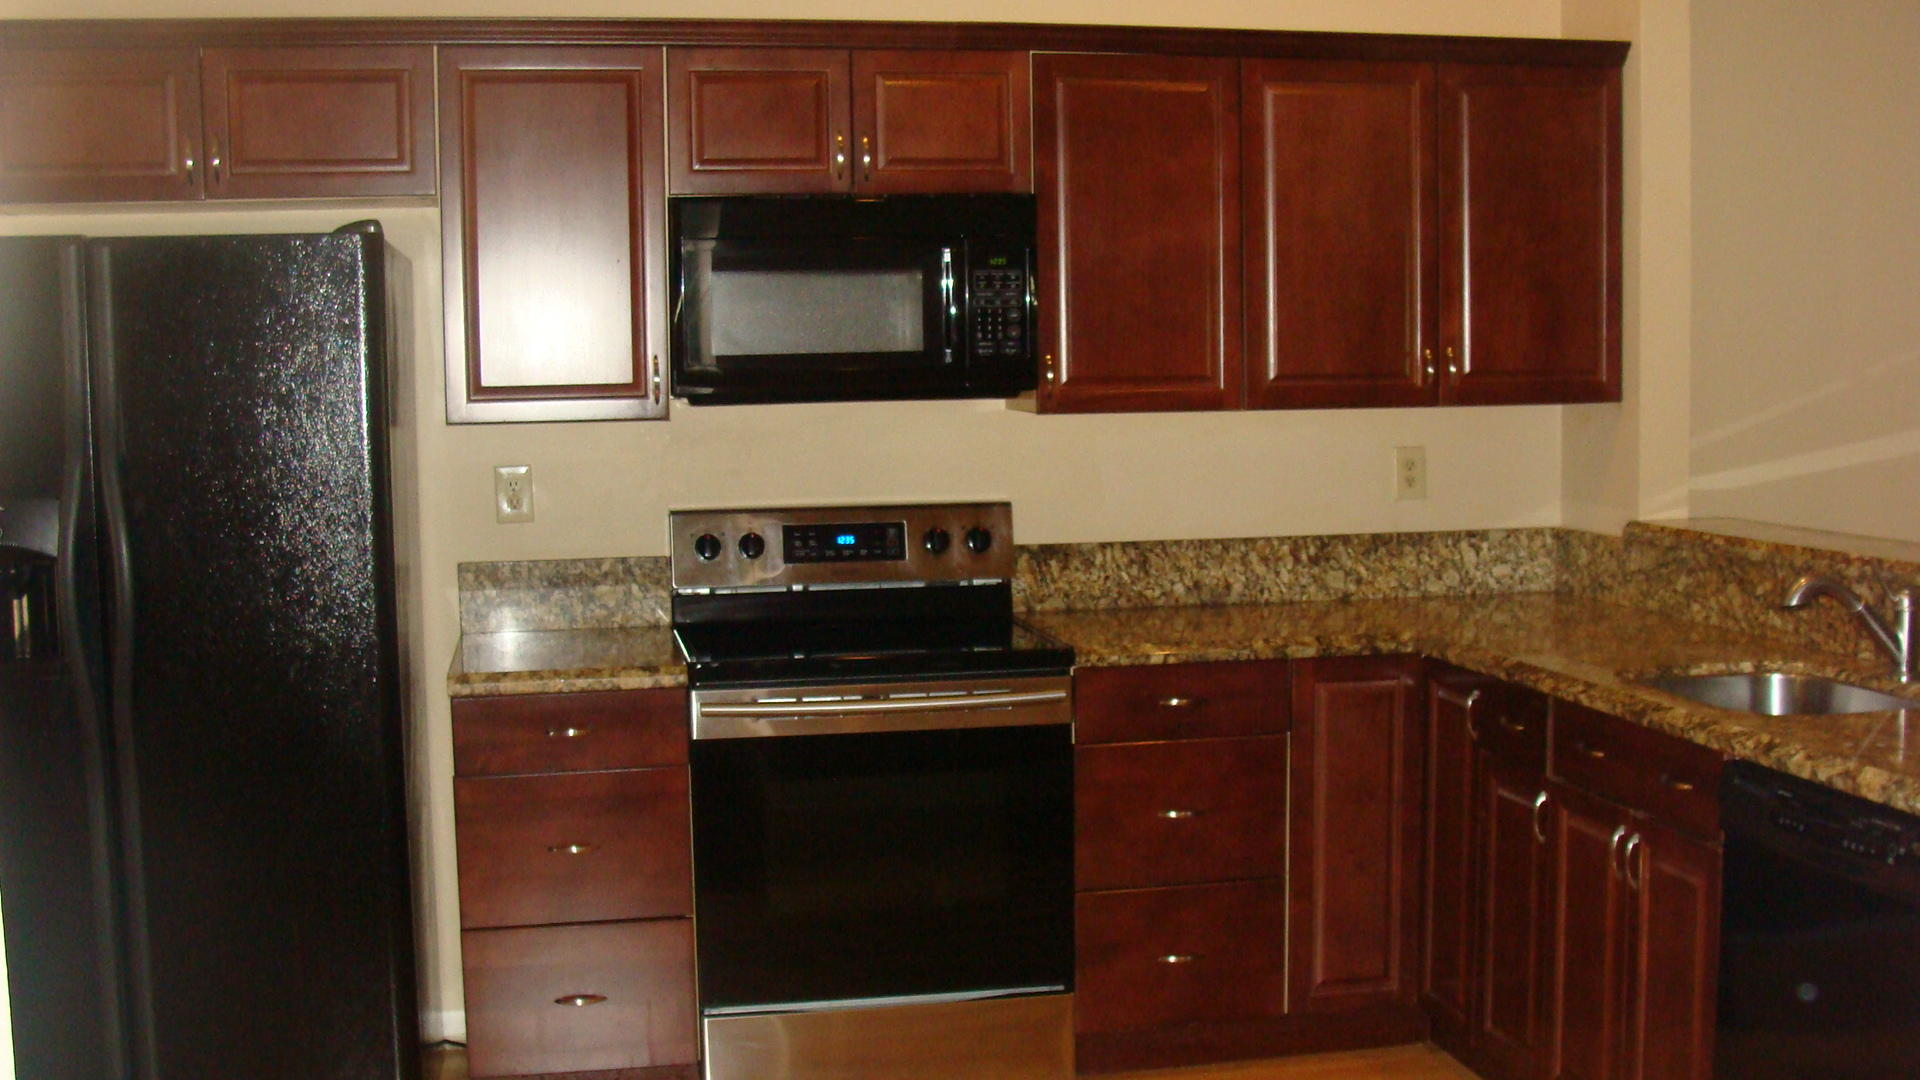 NEWER APPLIANCES